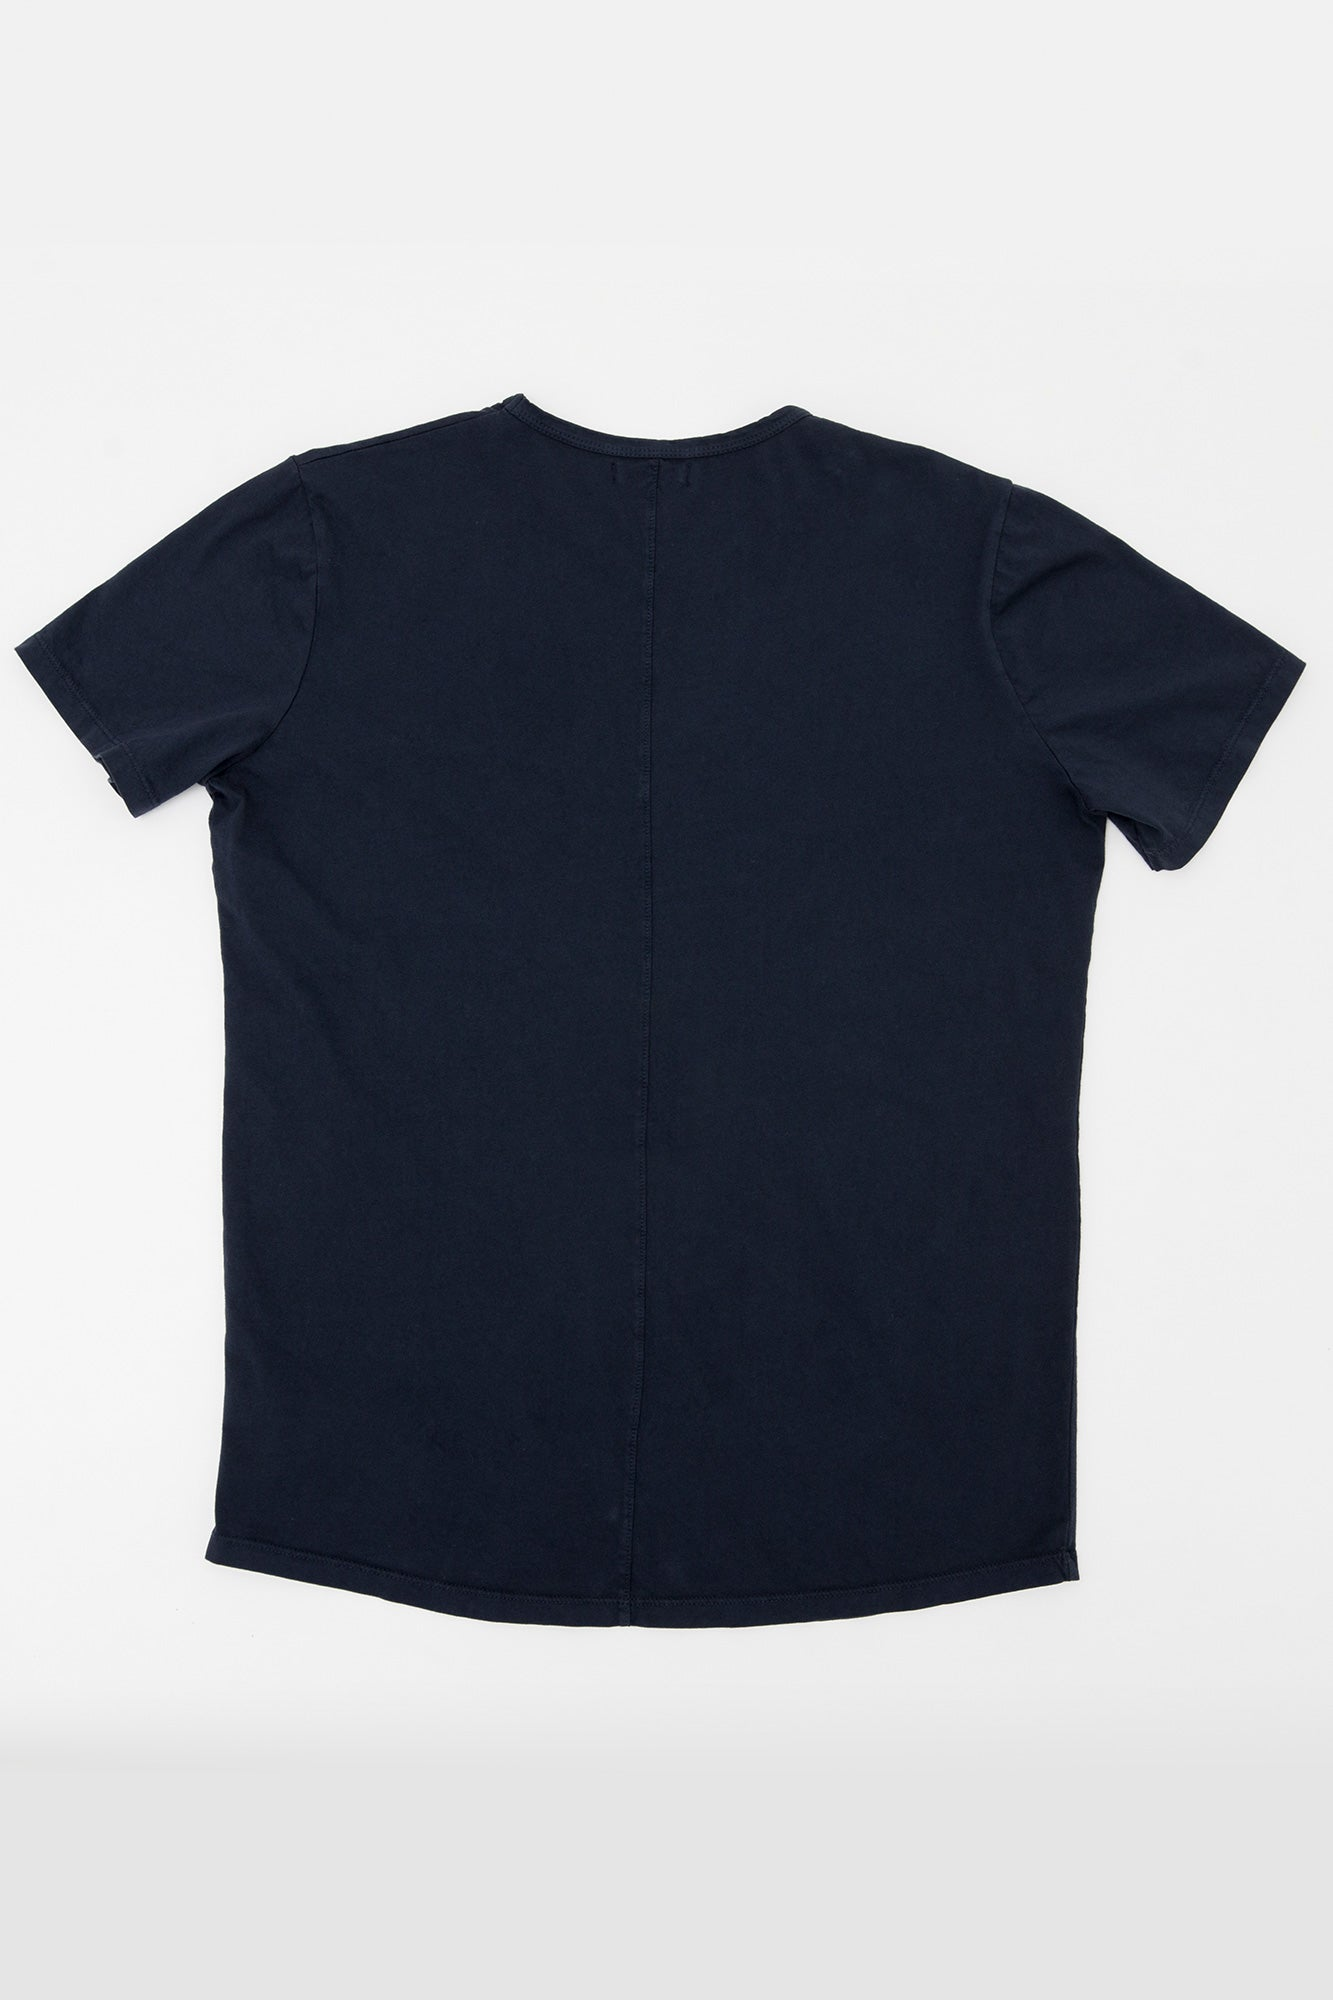 Back Seam Fashion Tshirt